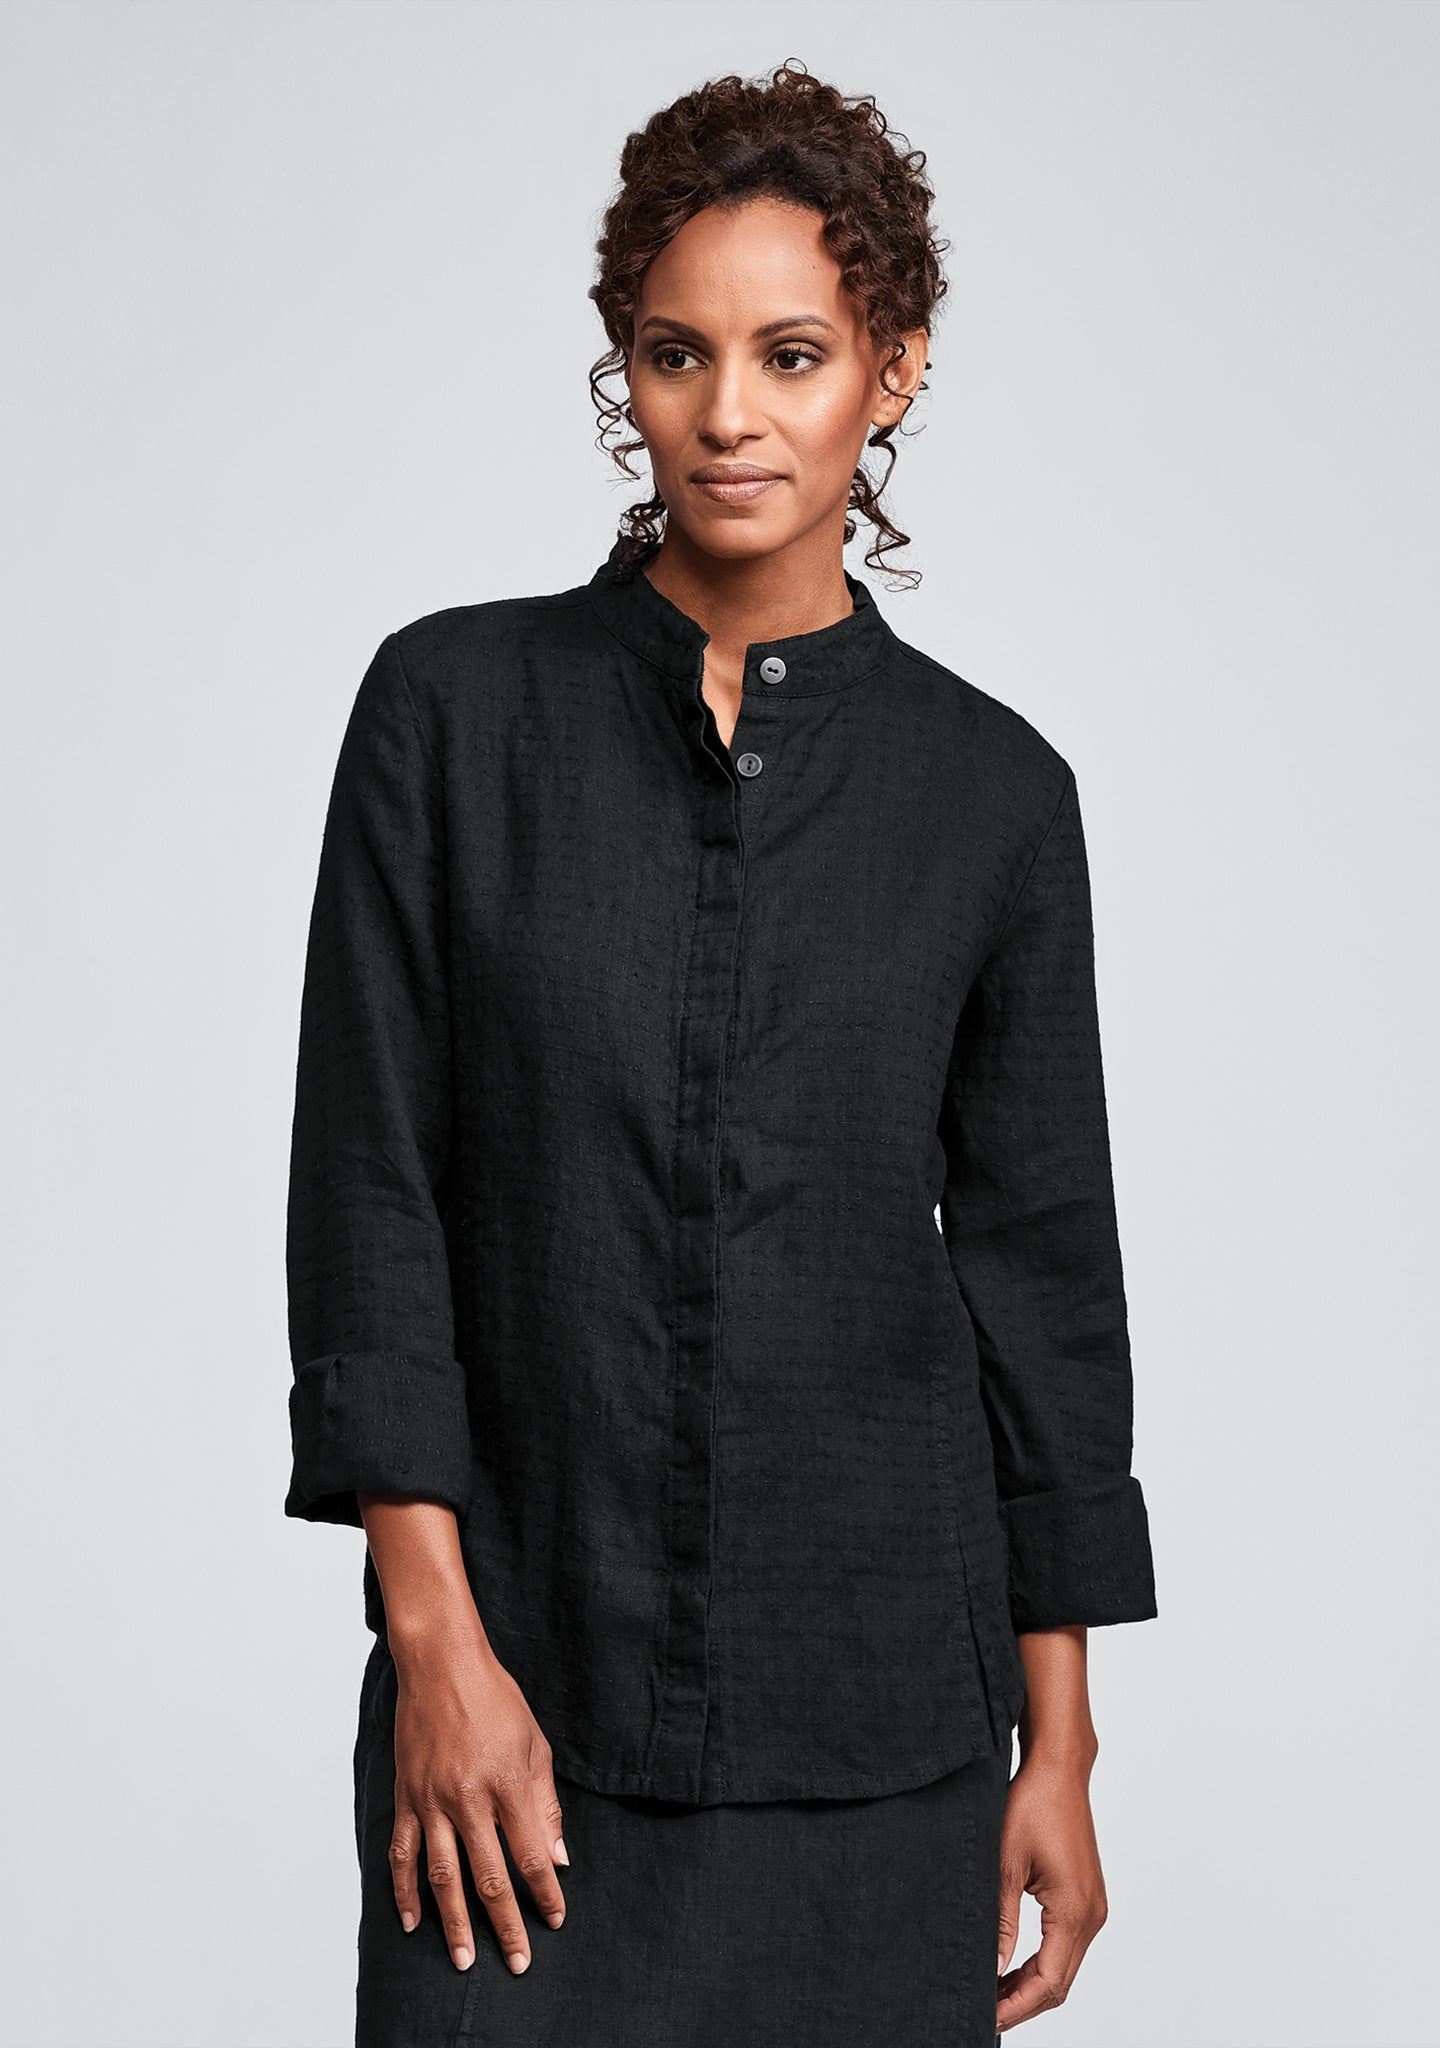 wear-with-all shirt linen button down shirt black